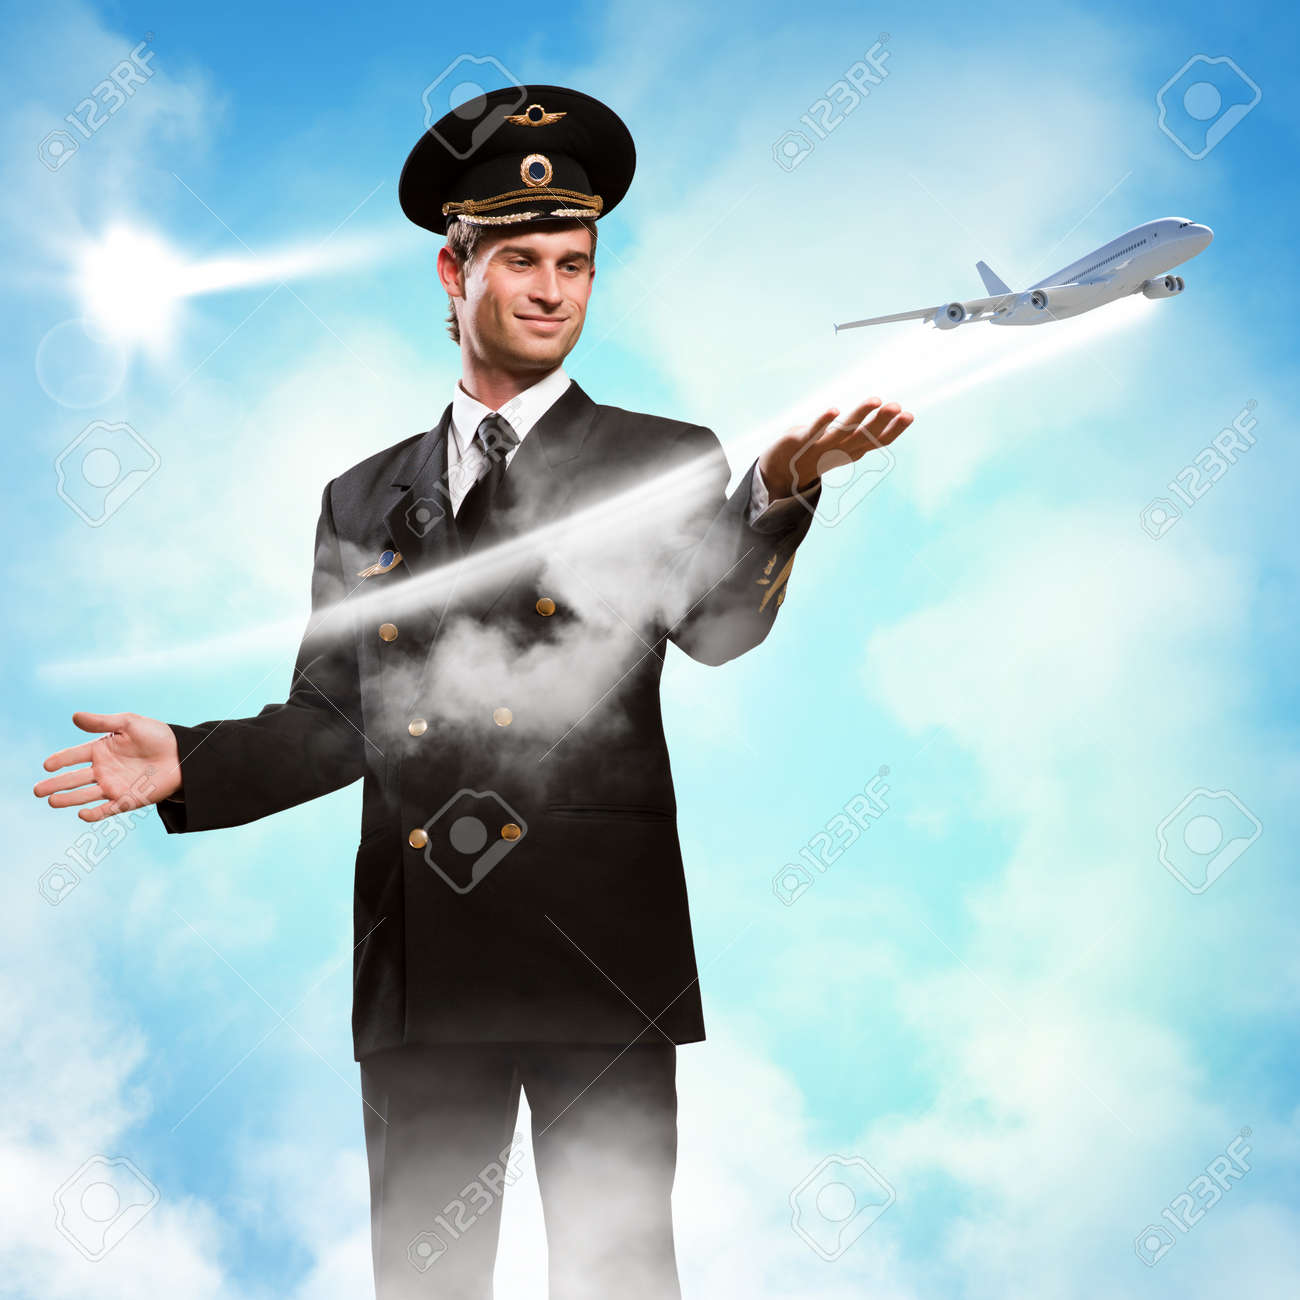 pilot in the form of extending a hand to a flying airplane on the background of clouds and sun Stock Photo - 20678461